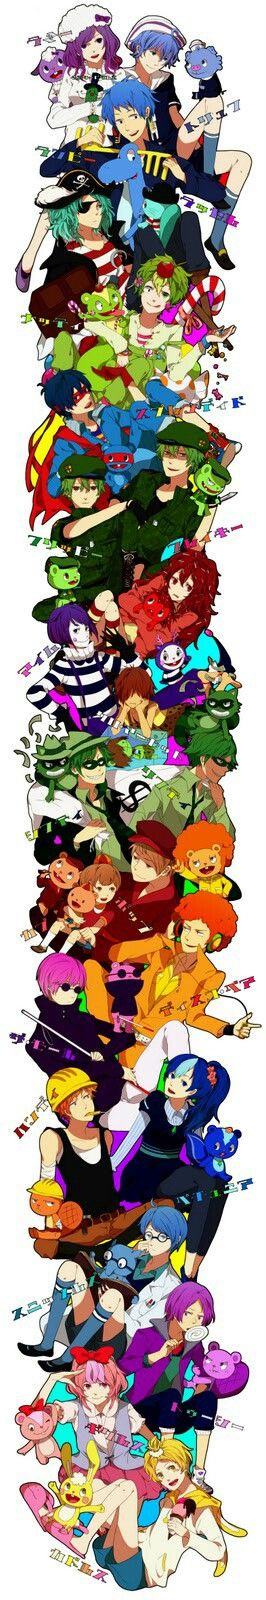 Happy Tree Friends [Anime Version]                                                                                                                                                                                 More